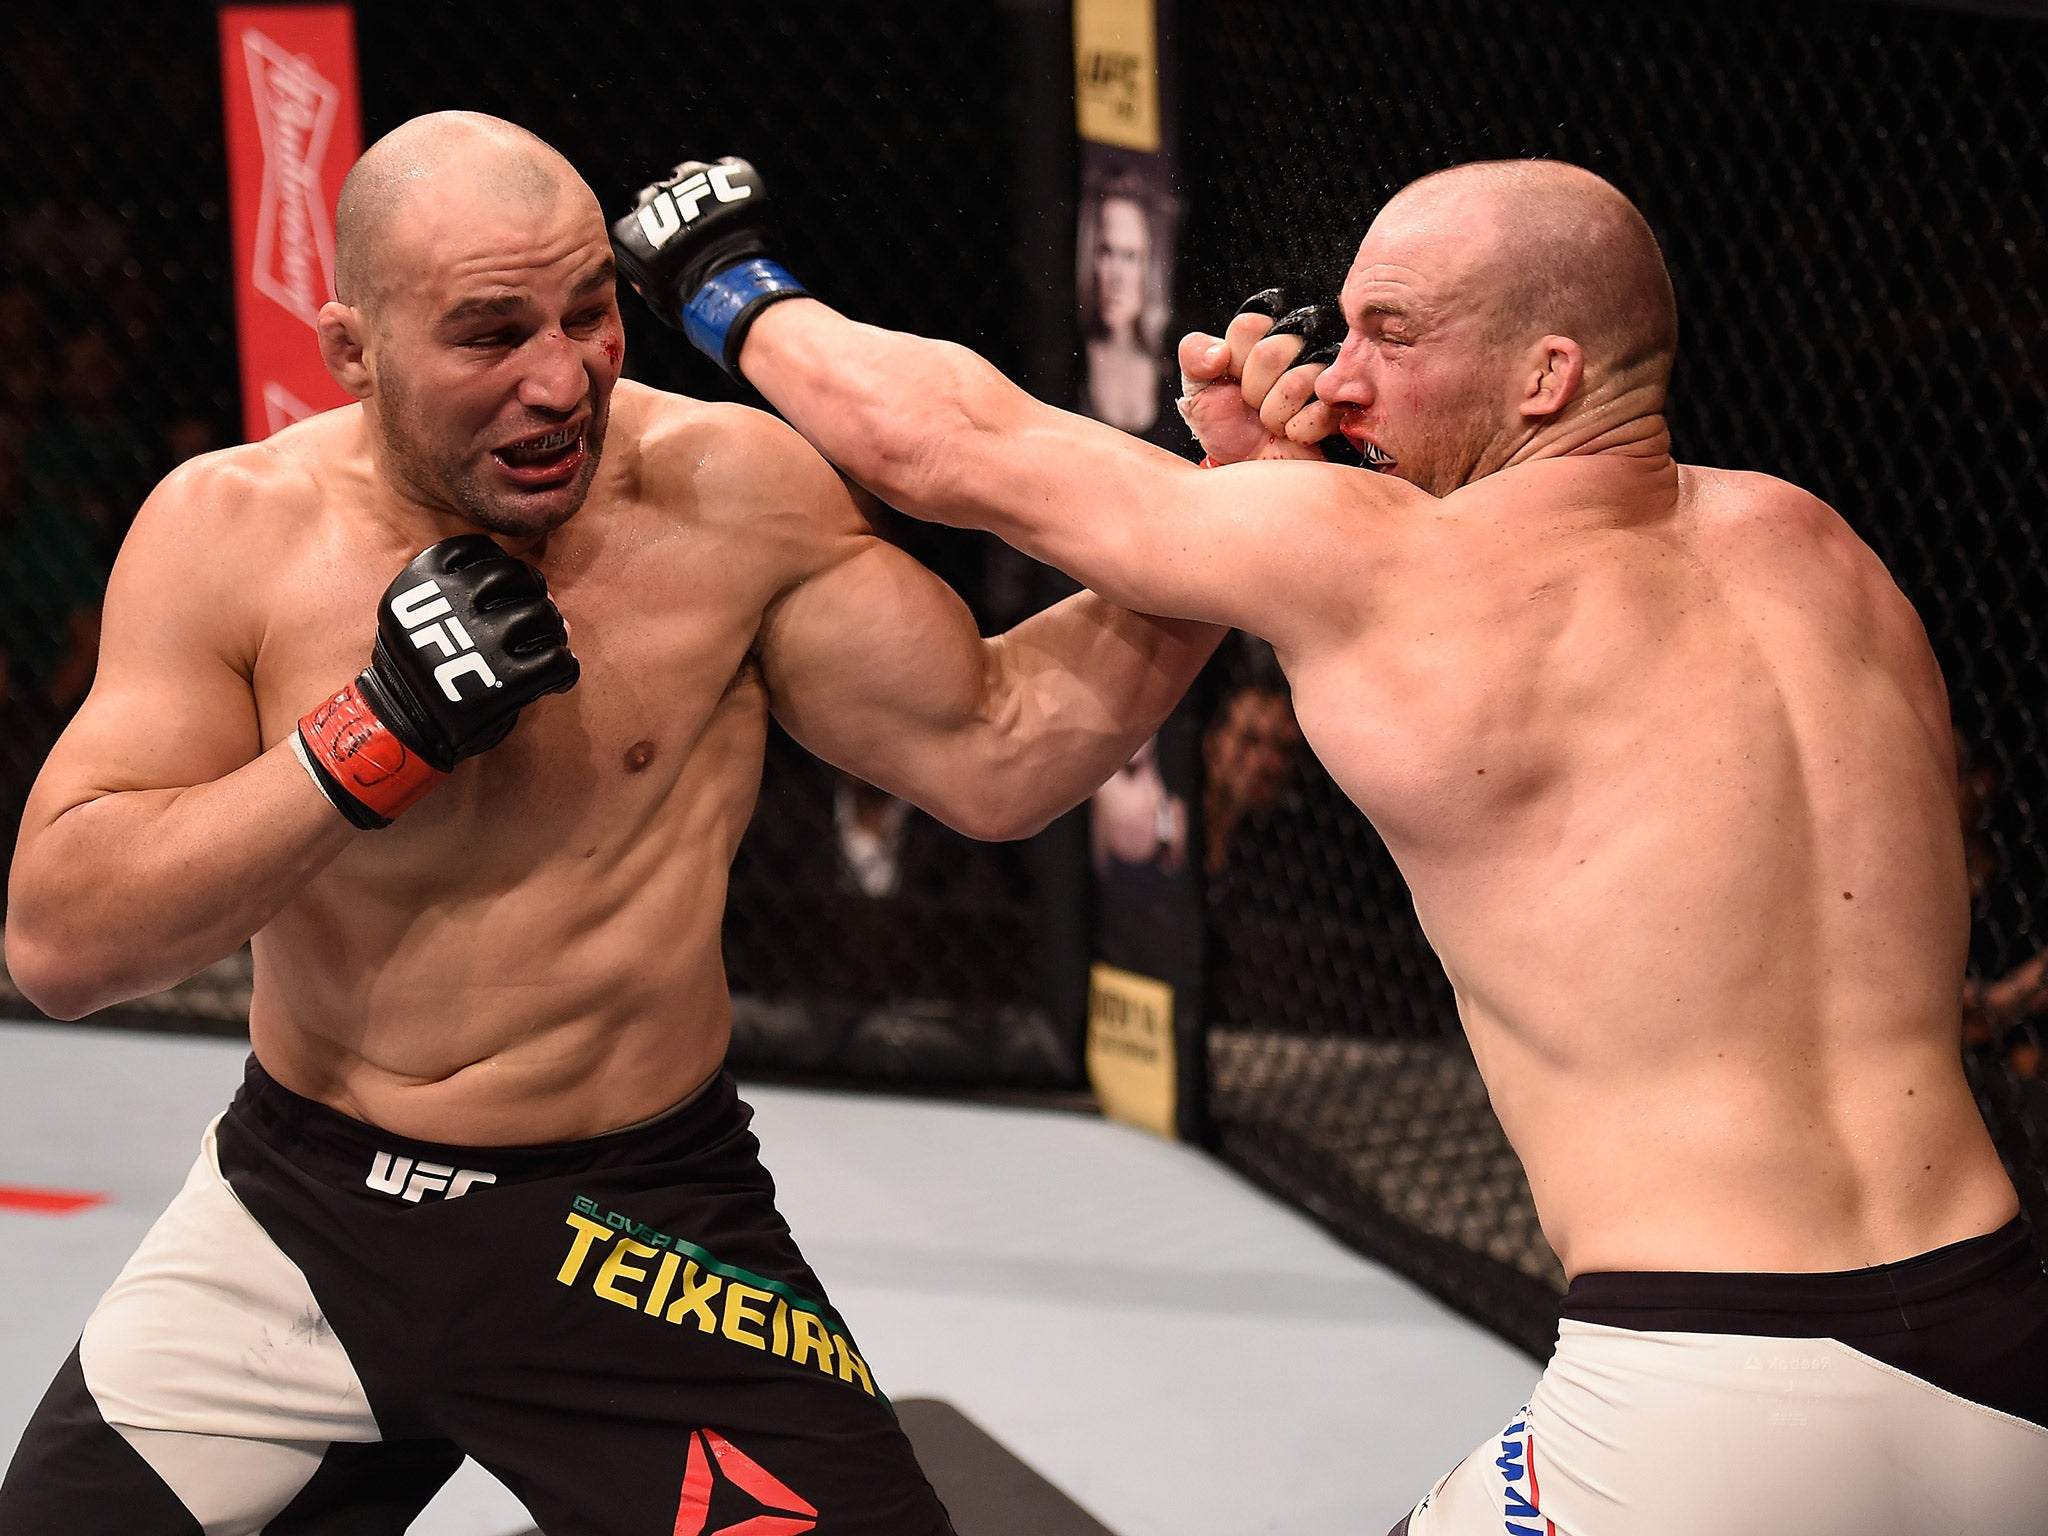 UFC on Fox 19: Don't let main events allow Glover Teixeira ...